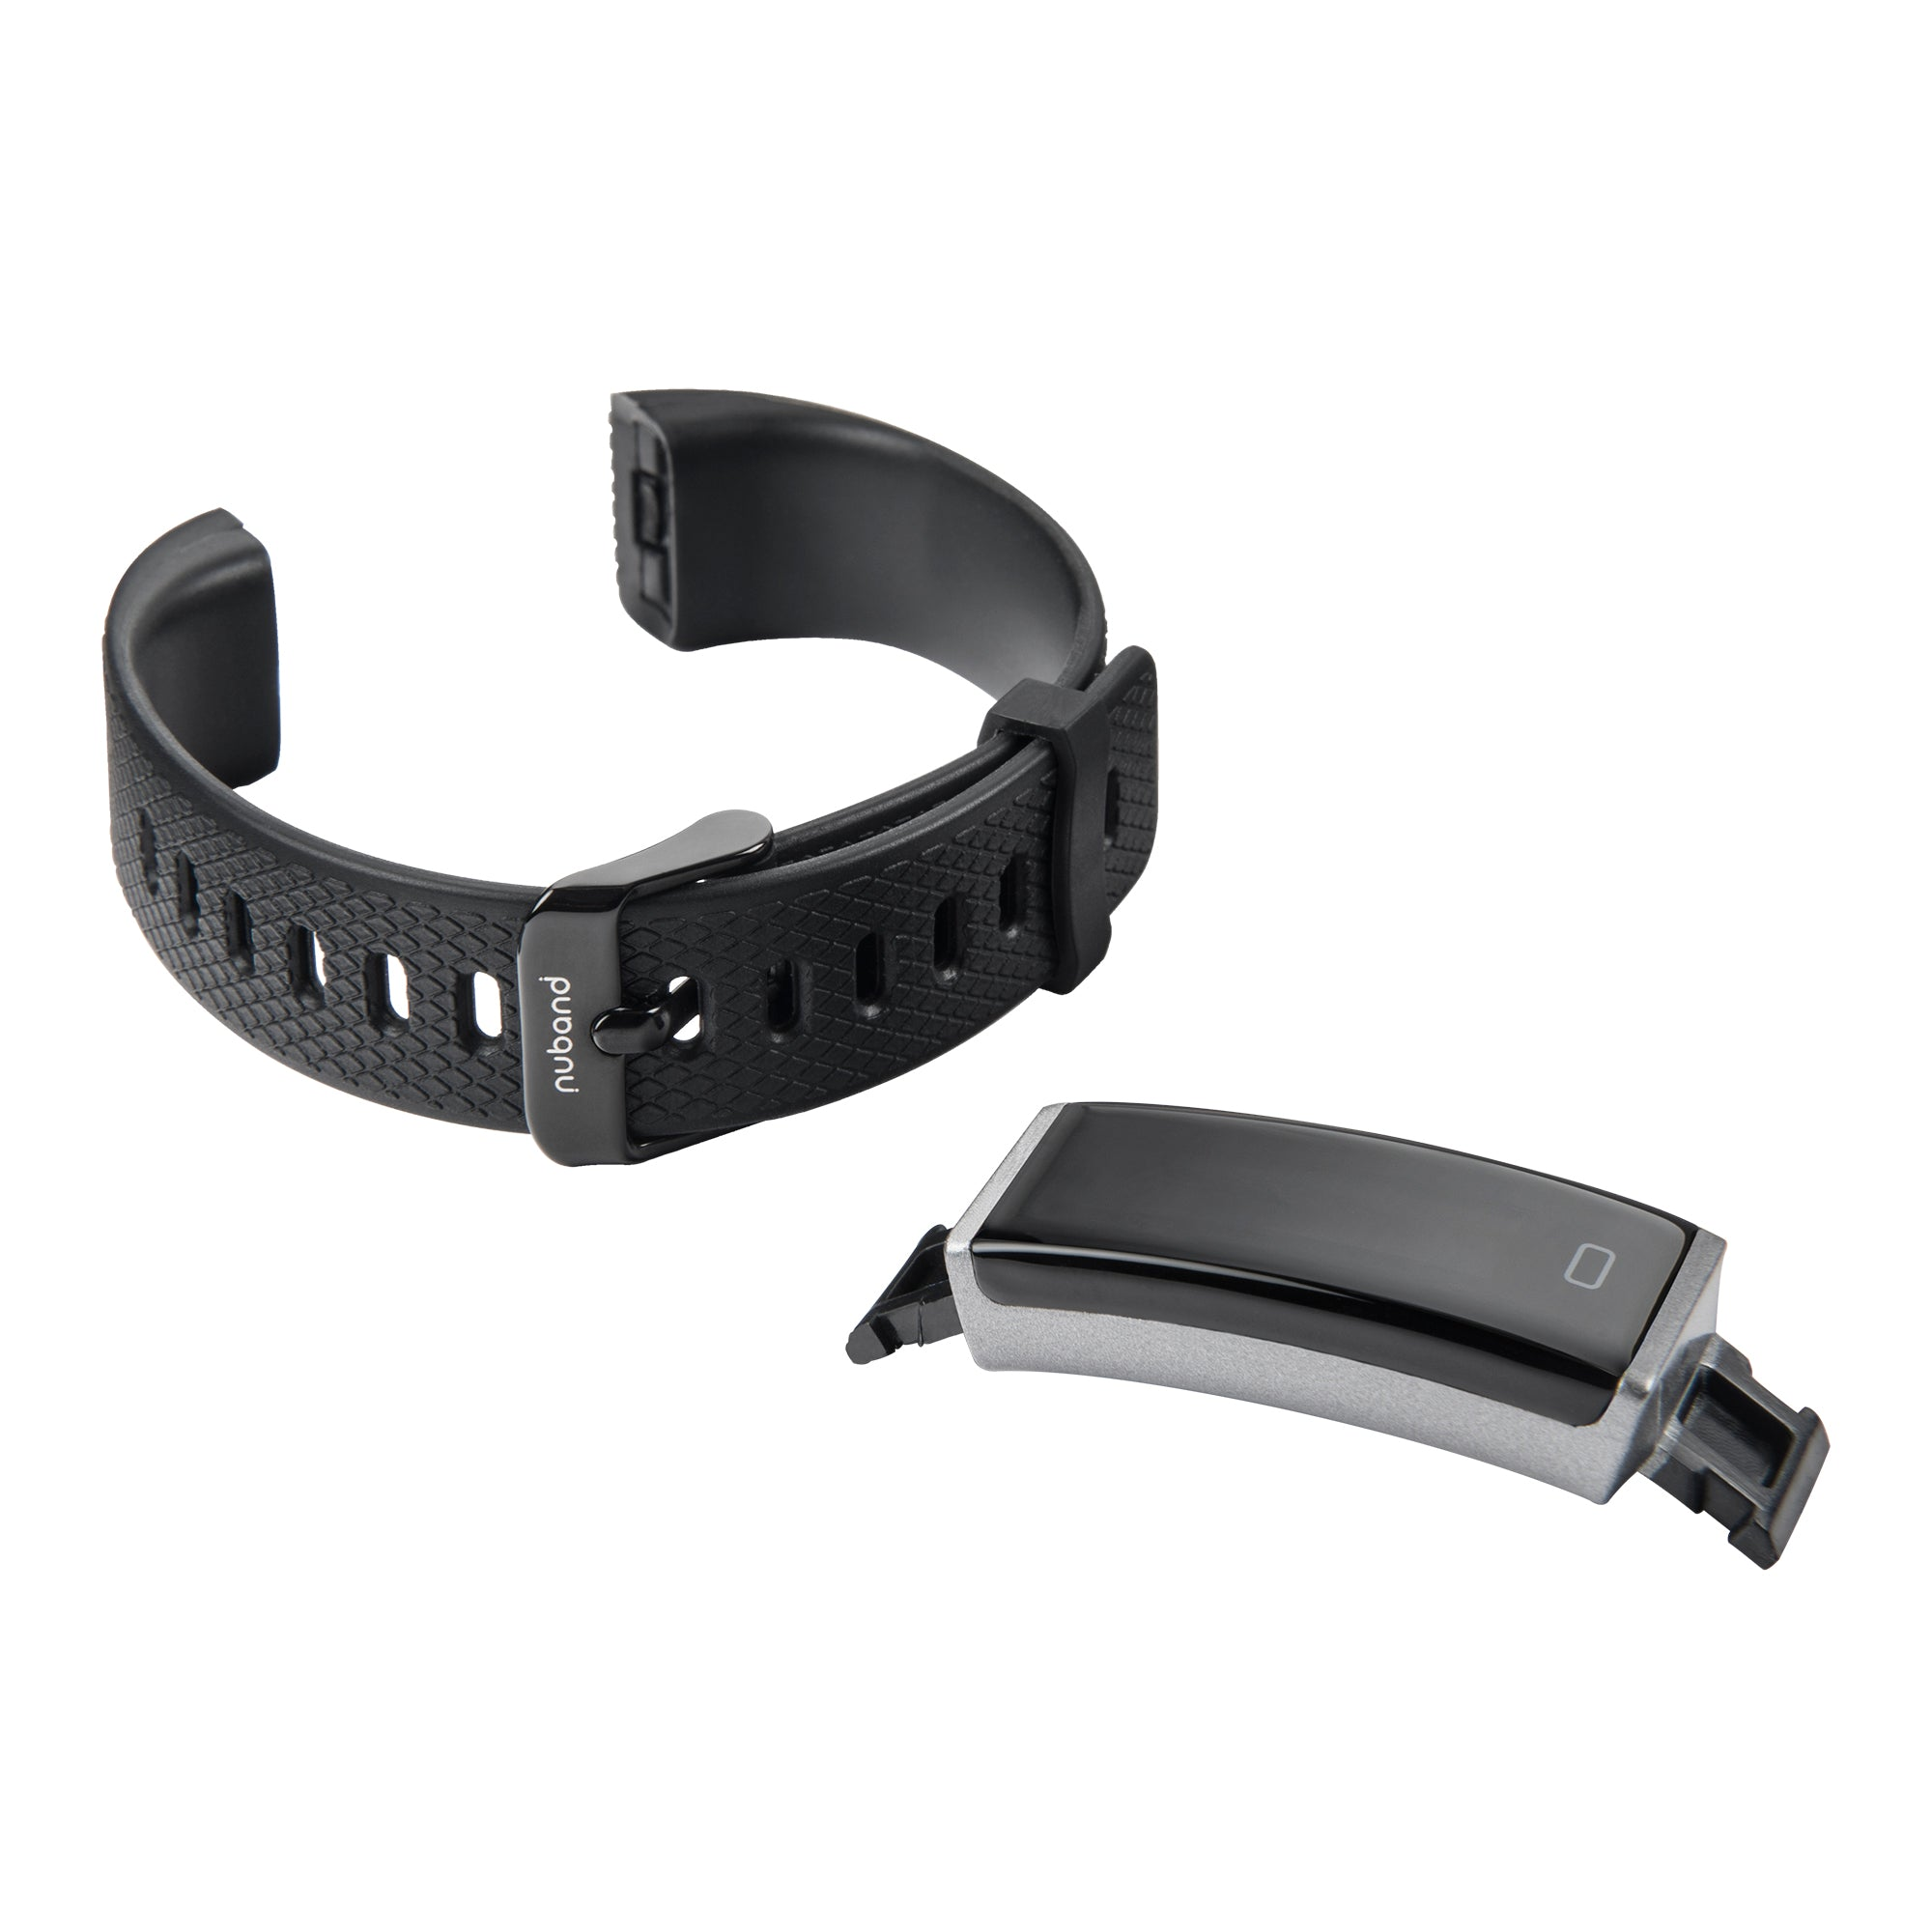 NUBAND ACTIV 3 ACTIVITY AND SLEEP TRACKER